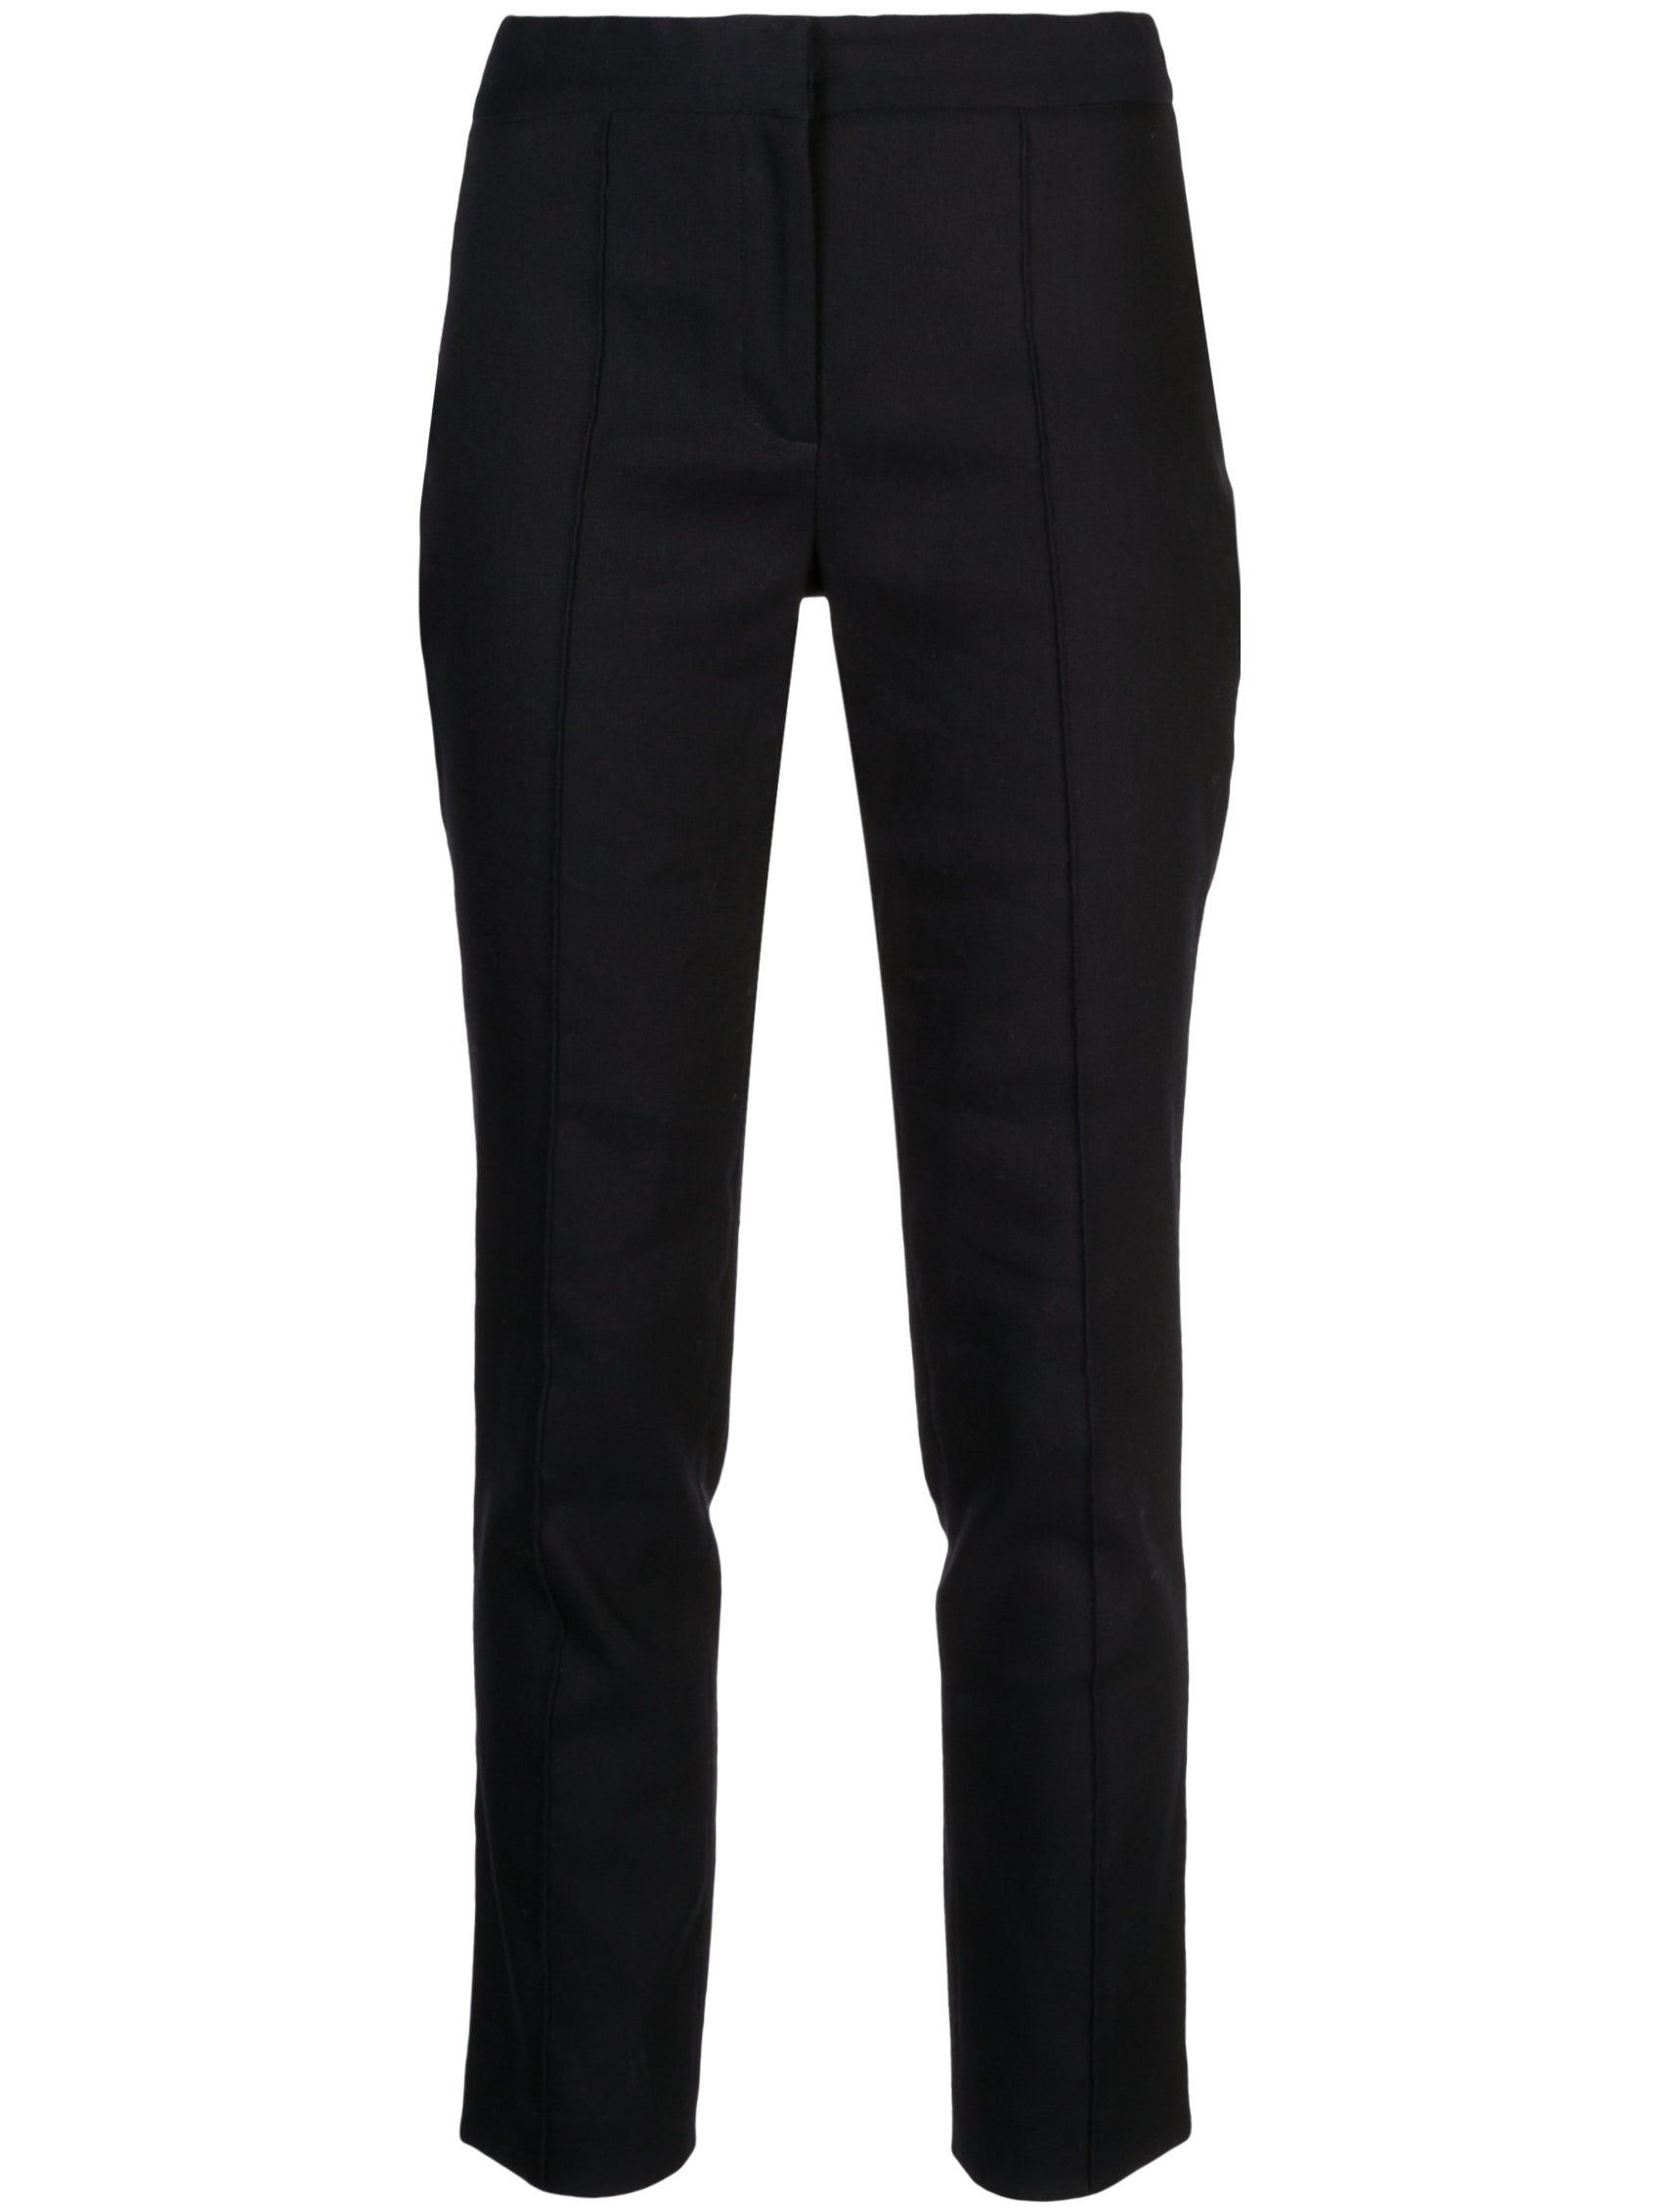 CIGARETTE PANT IN TEXTURED COTTON